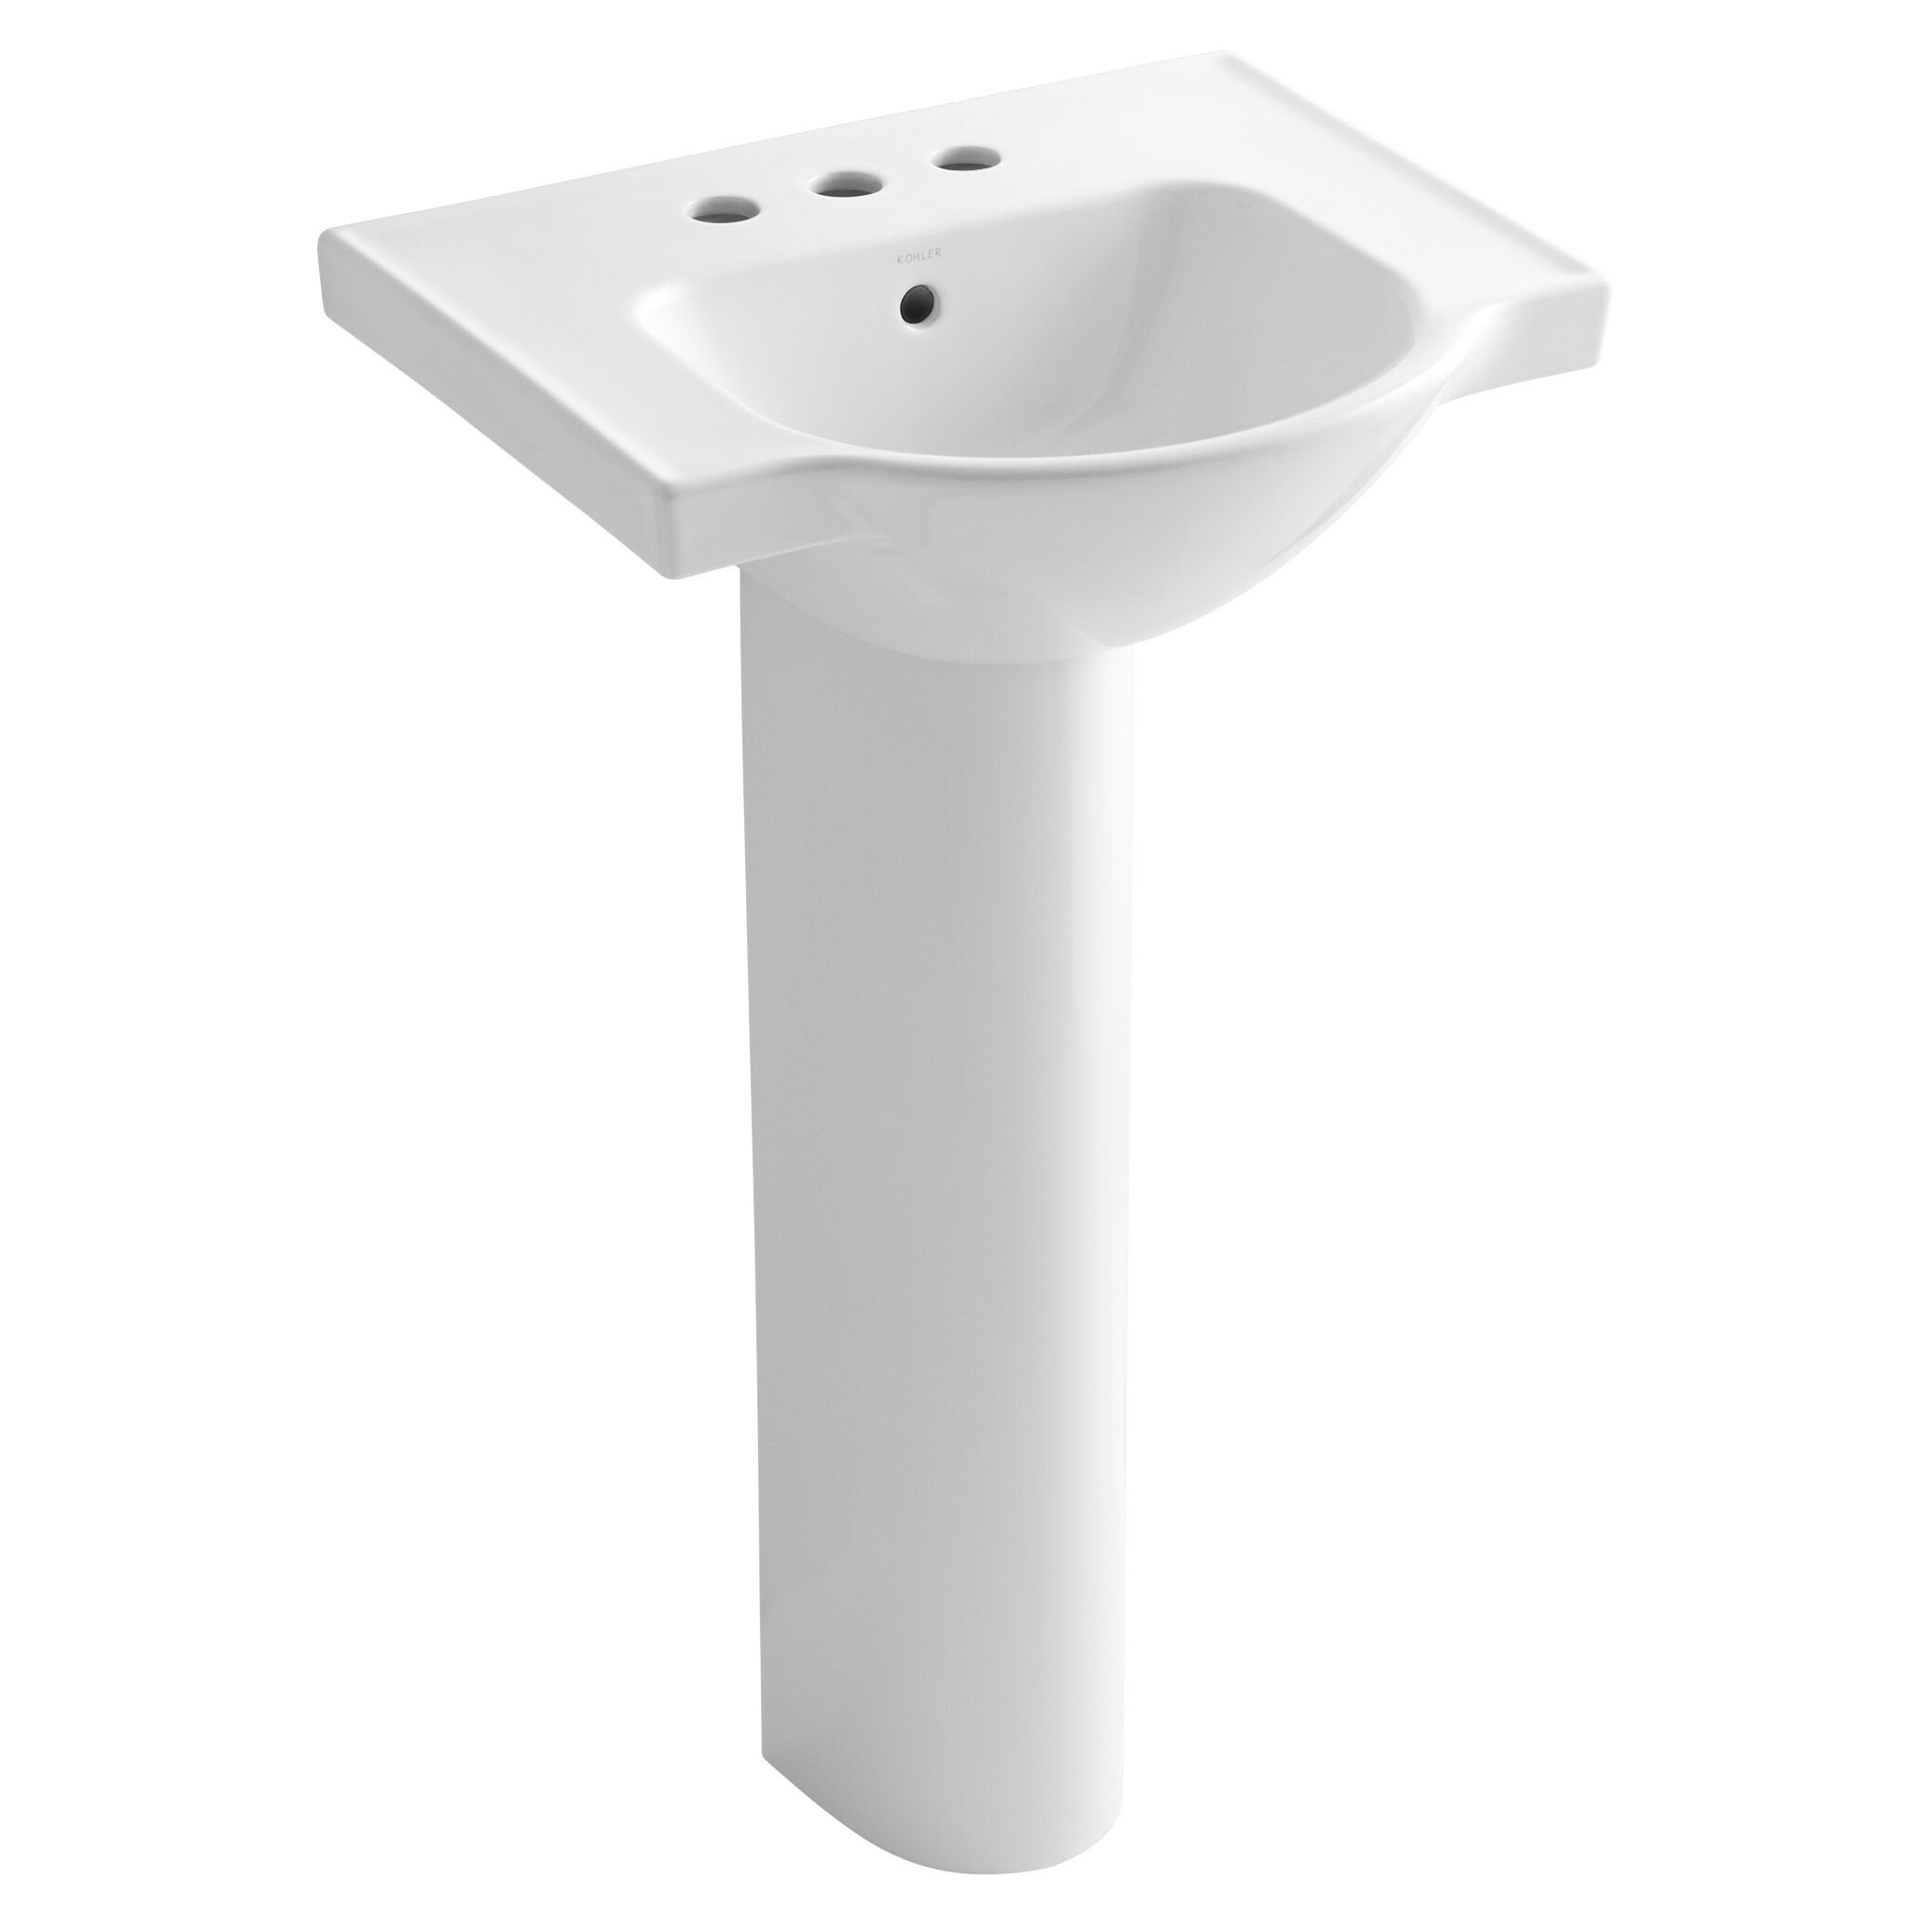 Kohler Veer 21 quot  Pedestal Bathroom Sink. Kohler Veer 21  Pedestal Bathroom Sink   Reviews   Wayfair